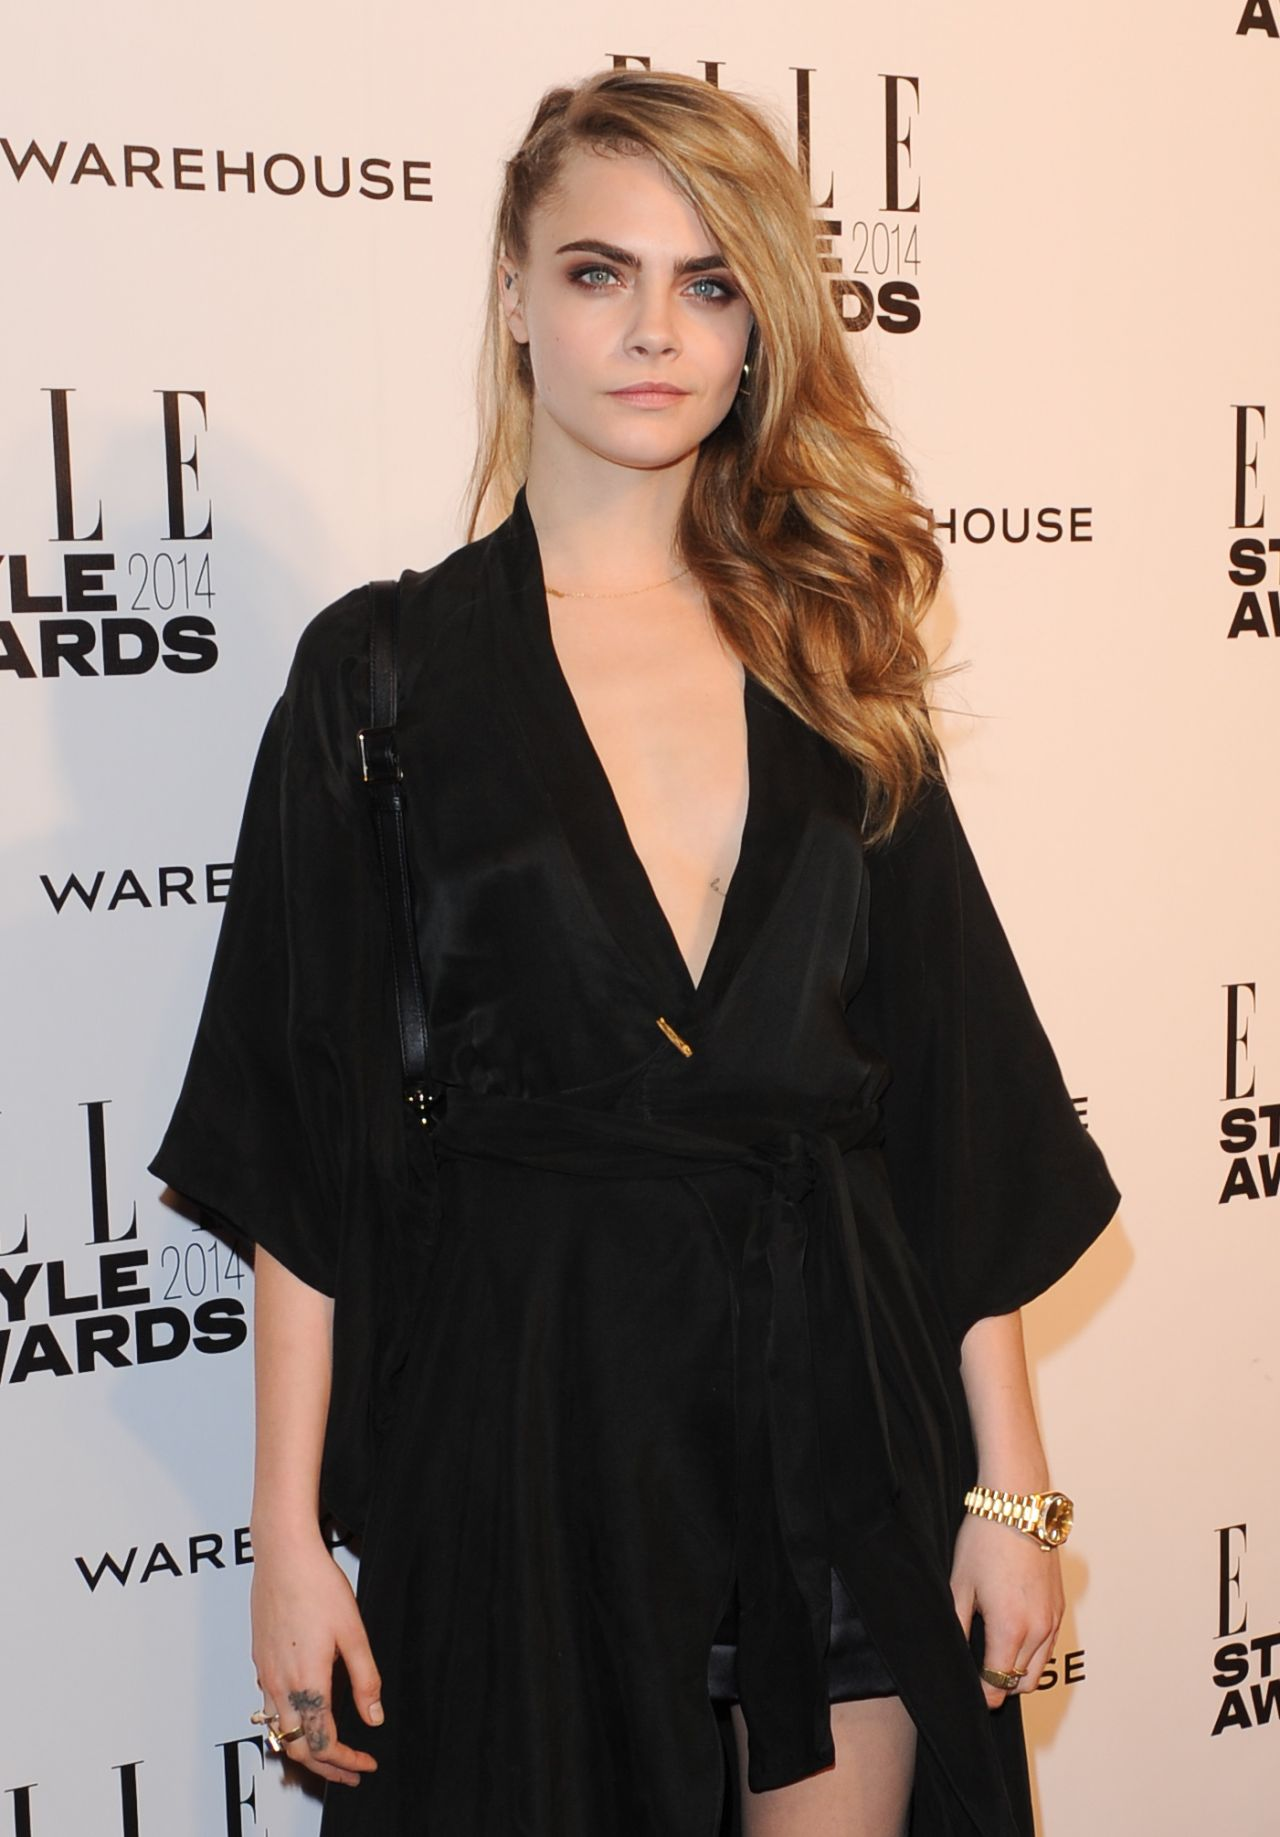 Cara Delevingne Wearing Vintage Dress - 2014 ELLE Style Awards